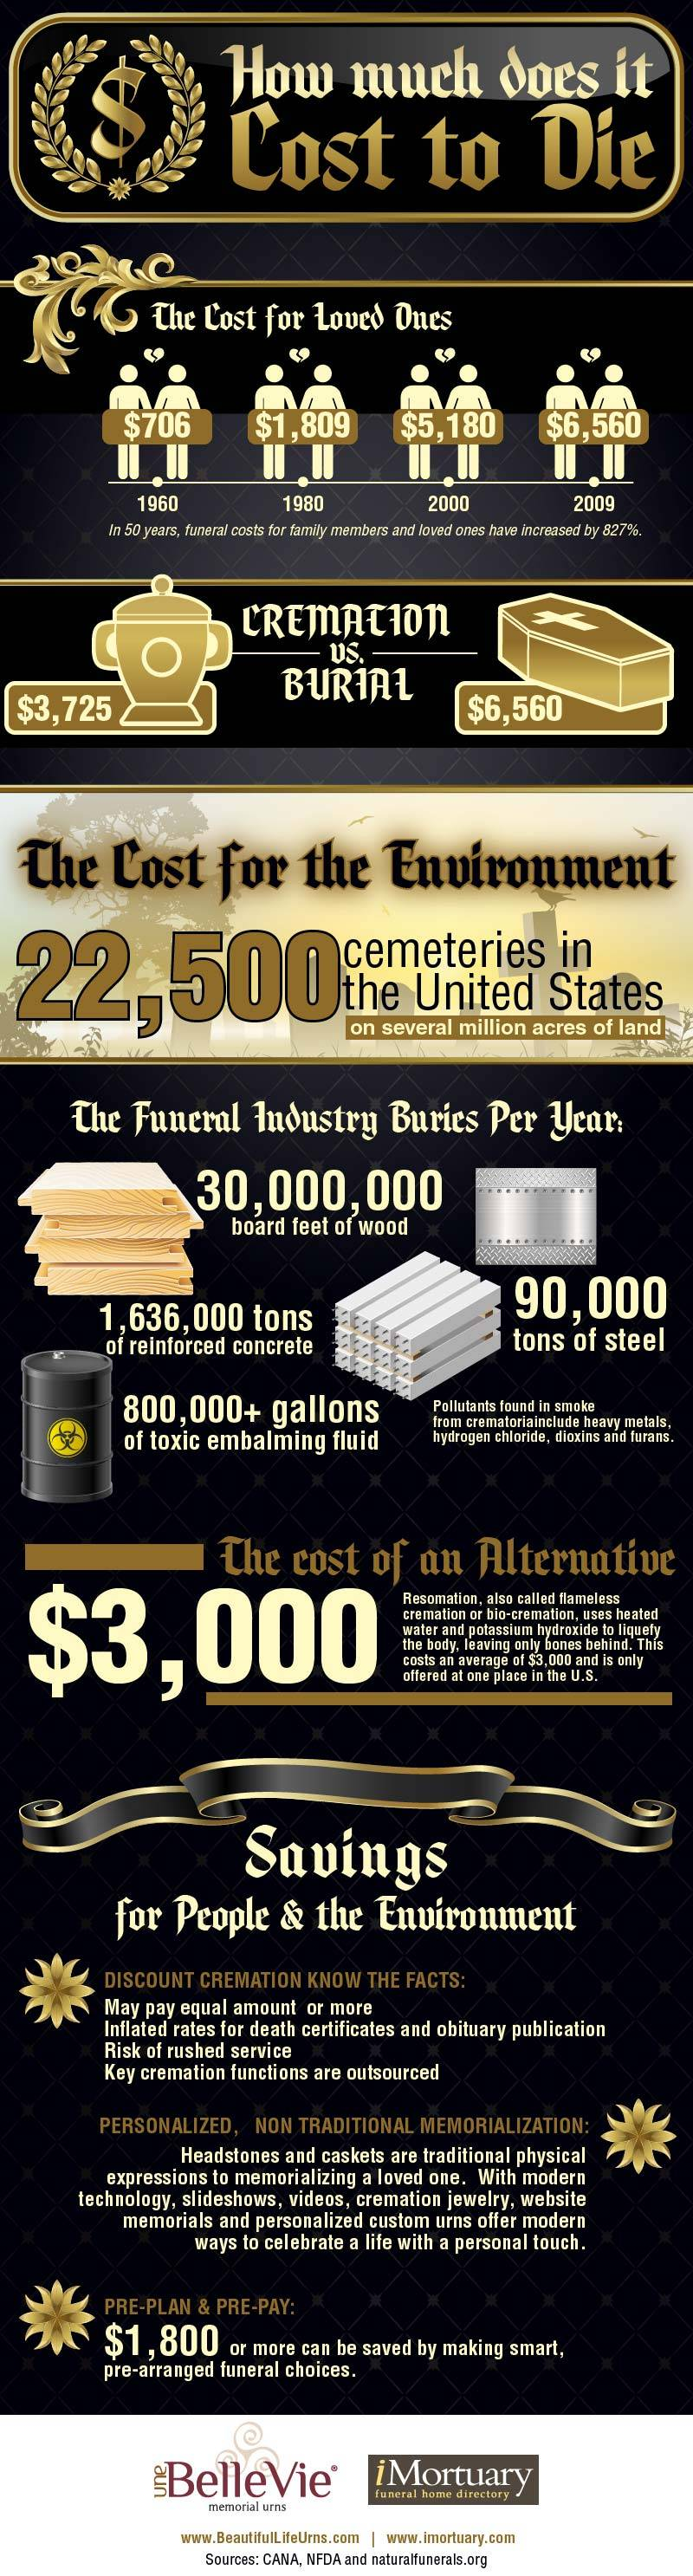 how much does it cost to die rising cost of funerals